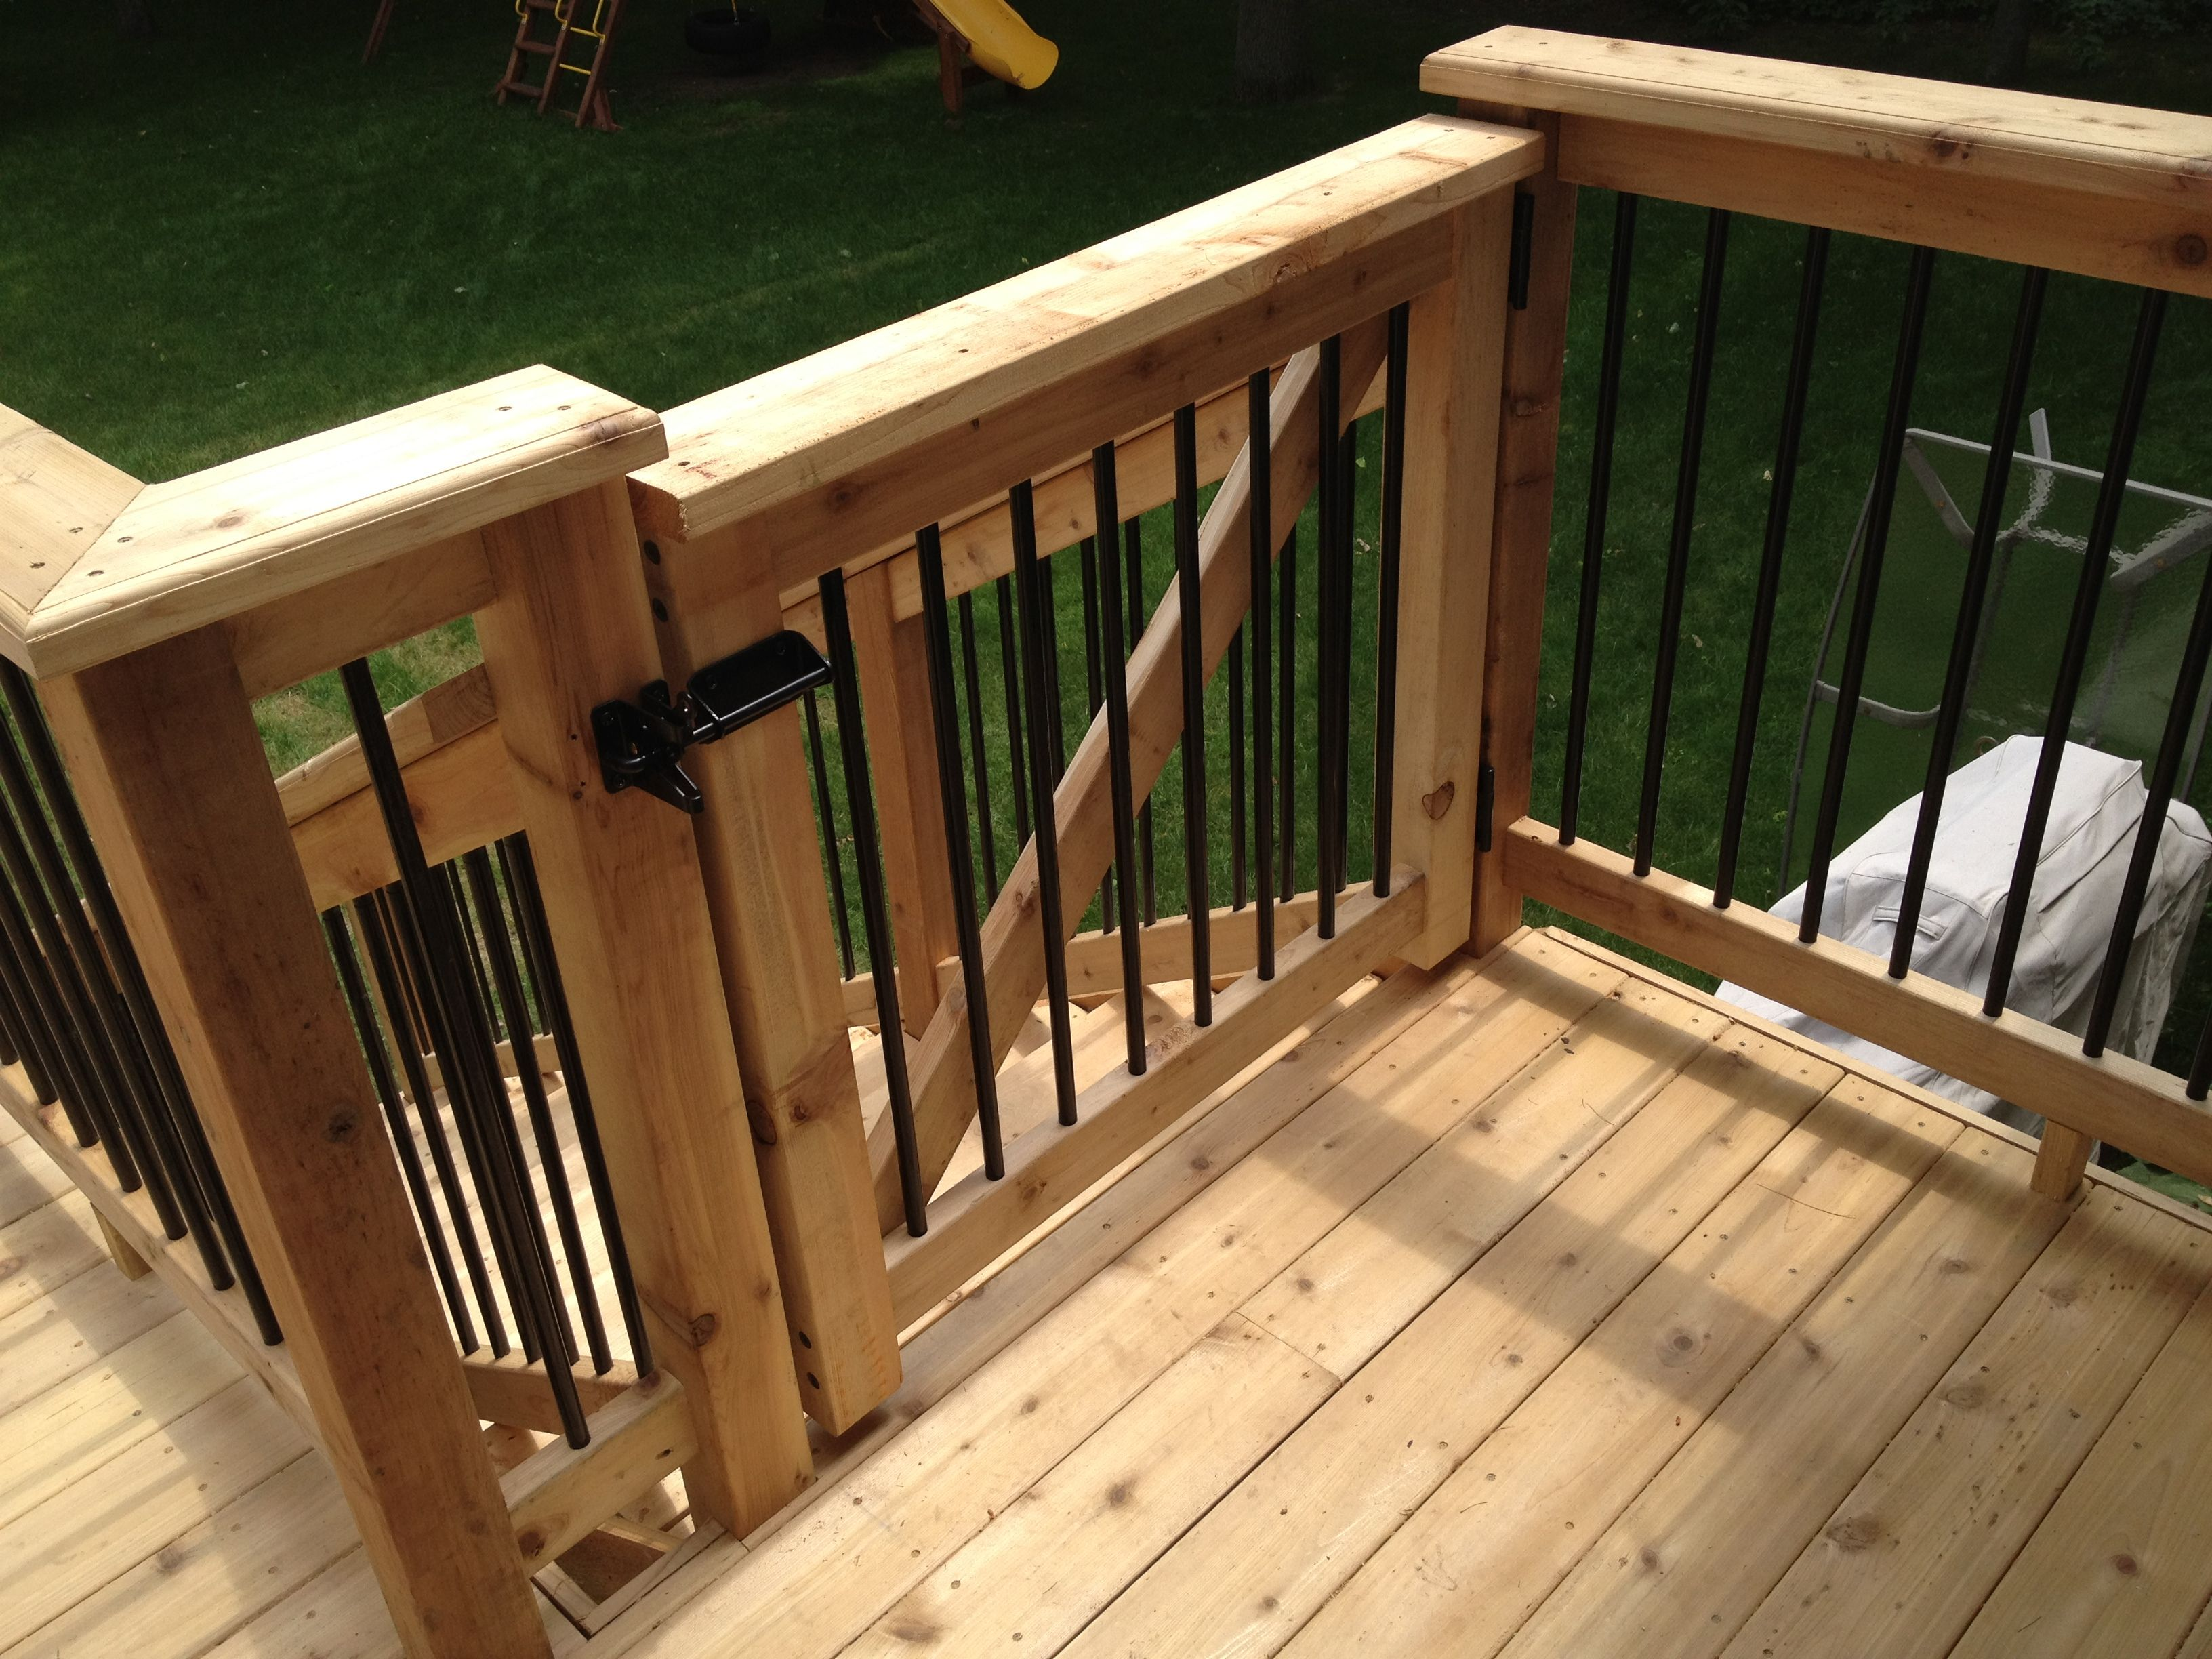 How To Build A Deck Gate With Spindles Kadakawa Org